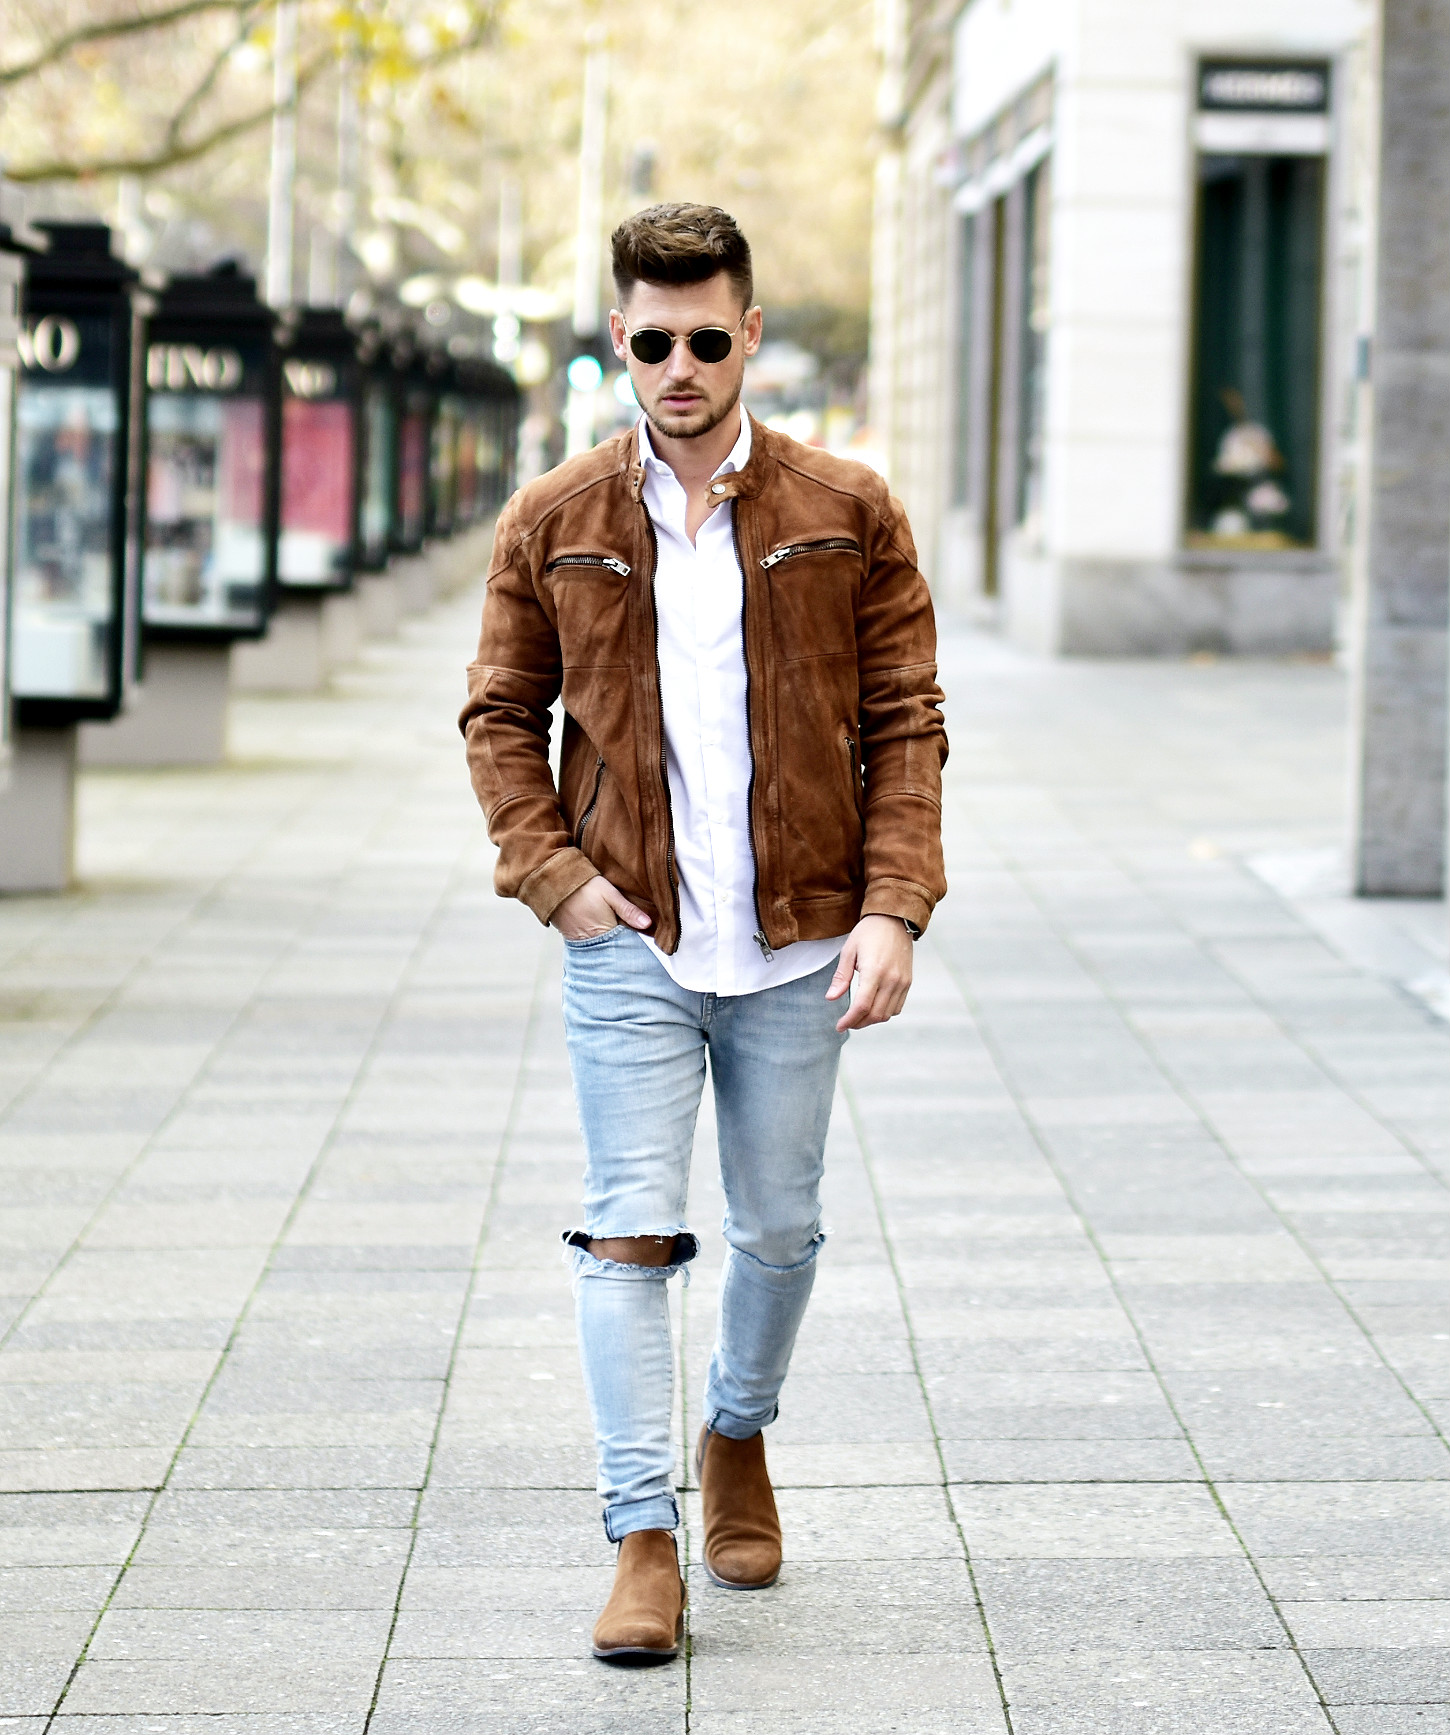 tommeezjerry-styleblog-maennerblog-maenner-modeblog-berlin-berlinblog-maennermodeblog-outfit-lederjacke-beedgy-movado-chelsea-boots-3